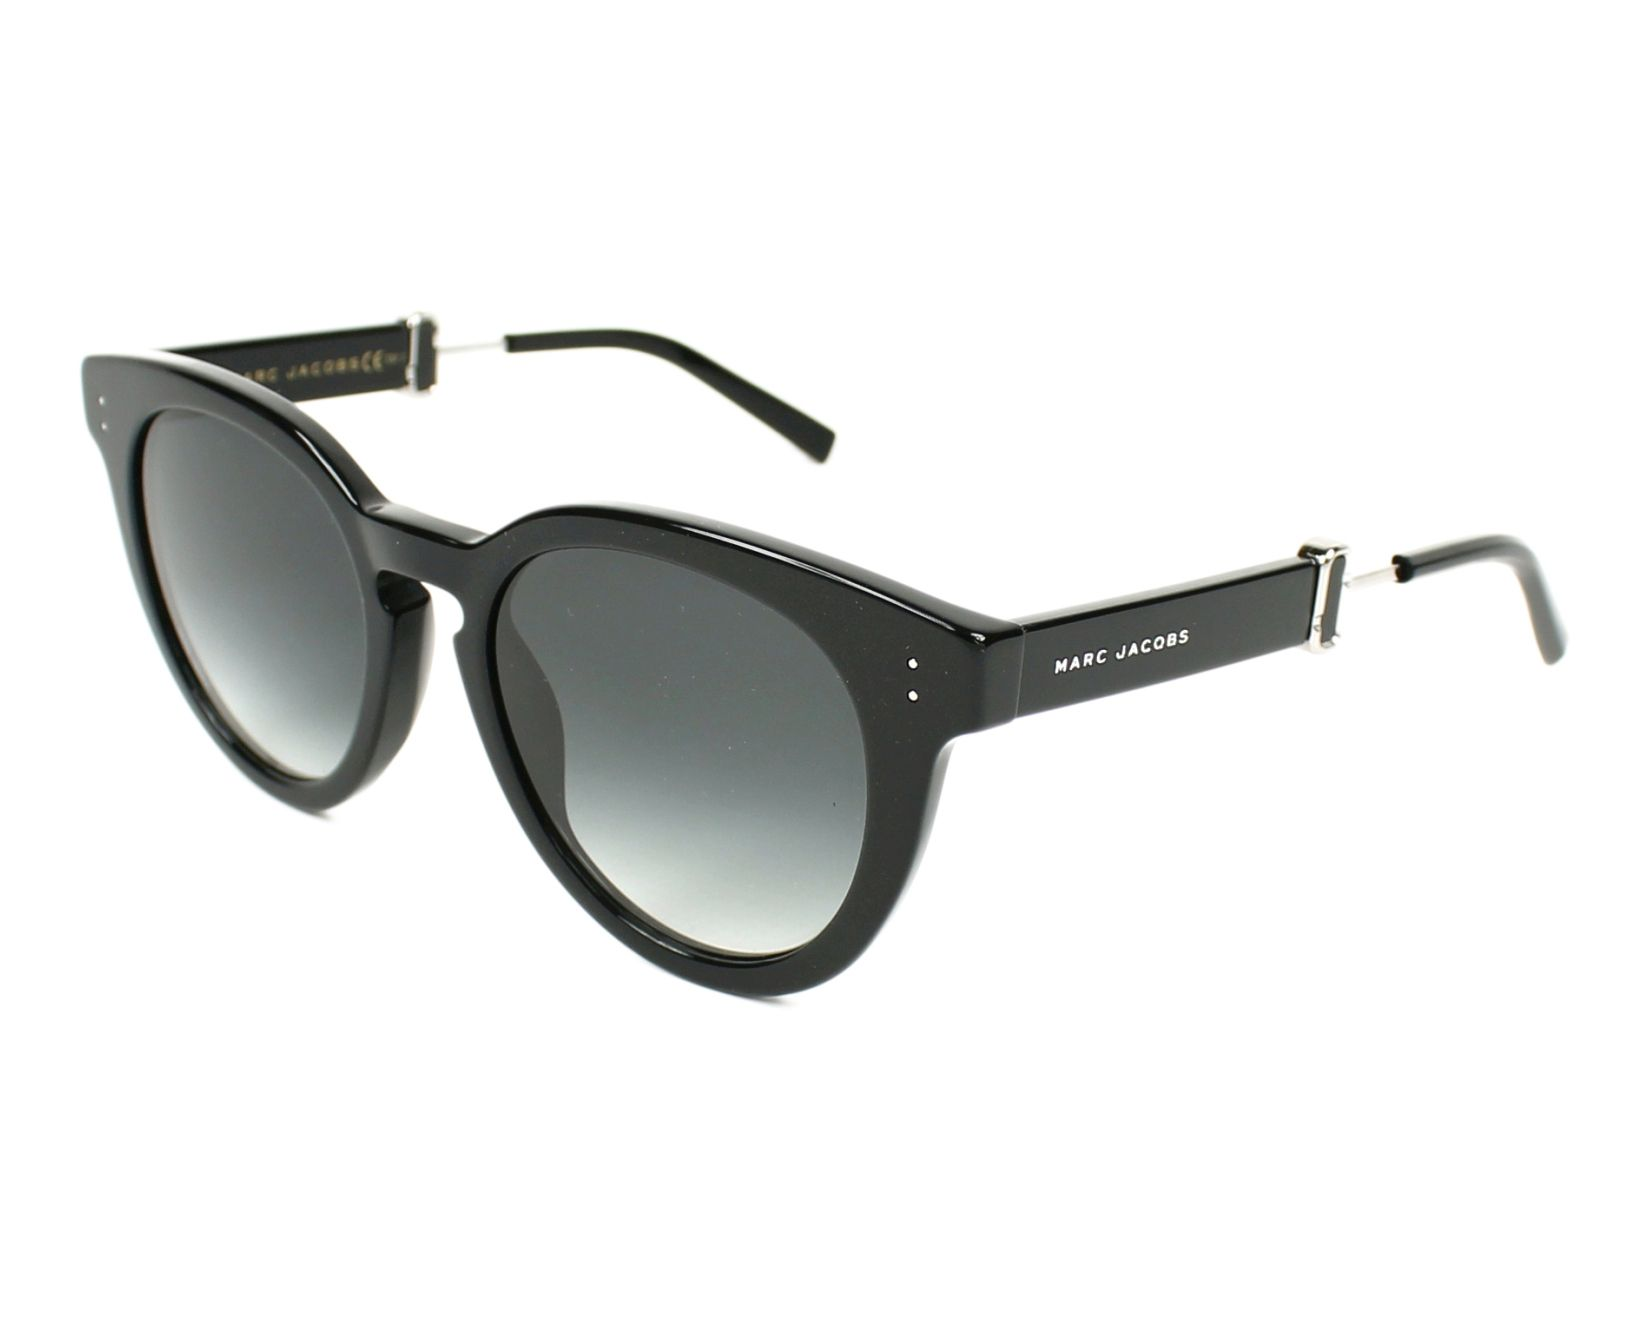 MARC JACOBS MARC129-S-807-9O-50  Sunglasses Size 50mm 140mm 20mm Black